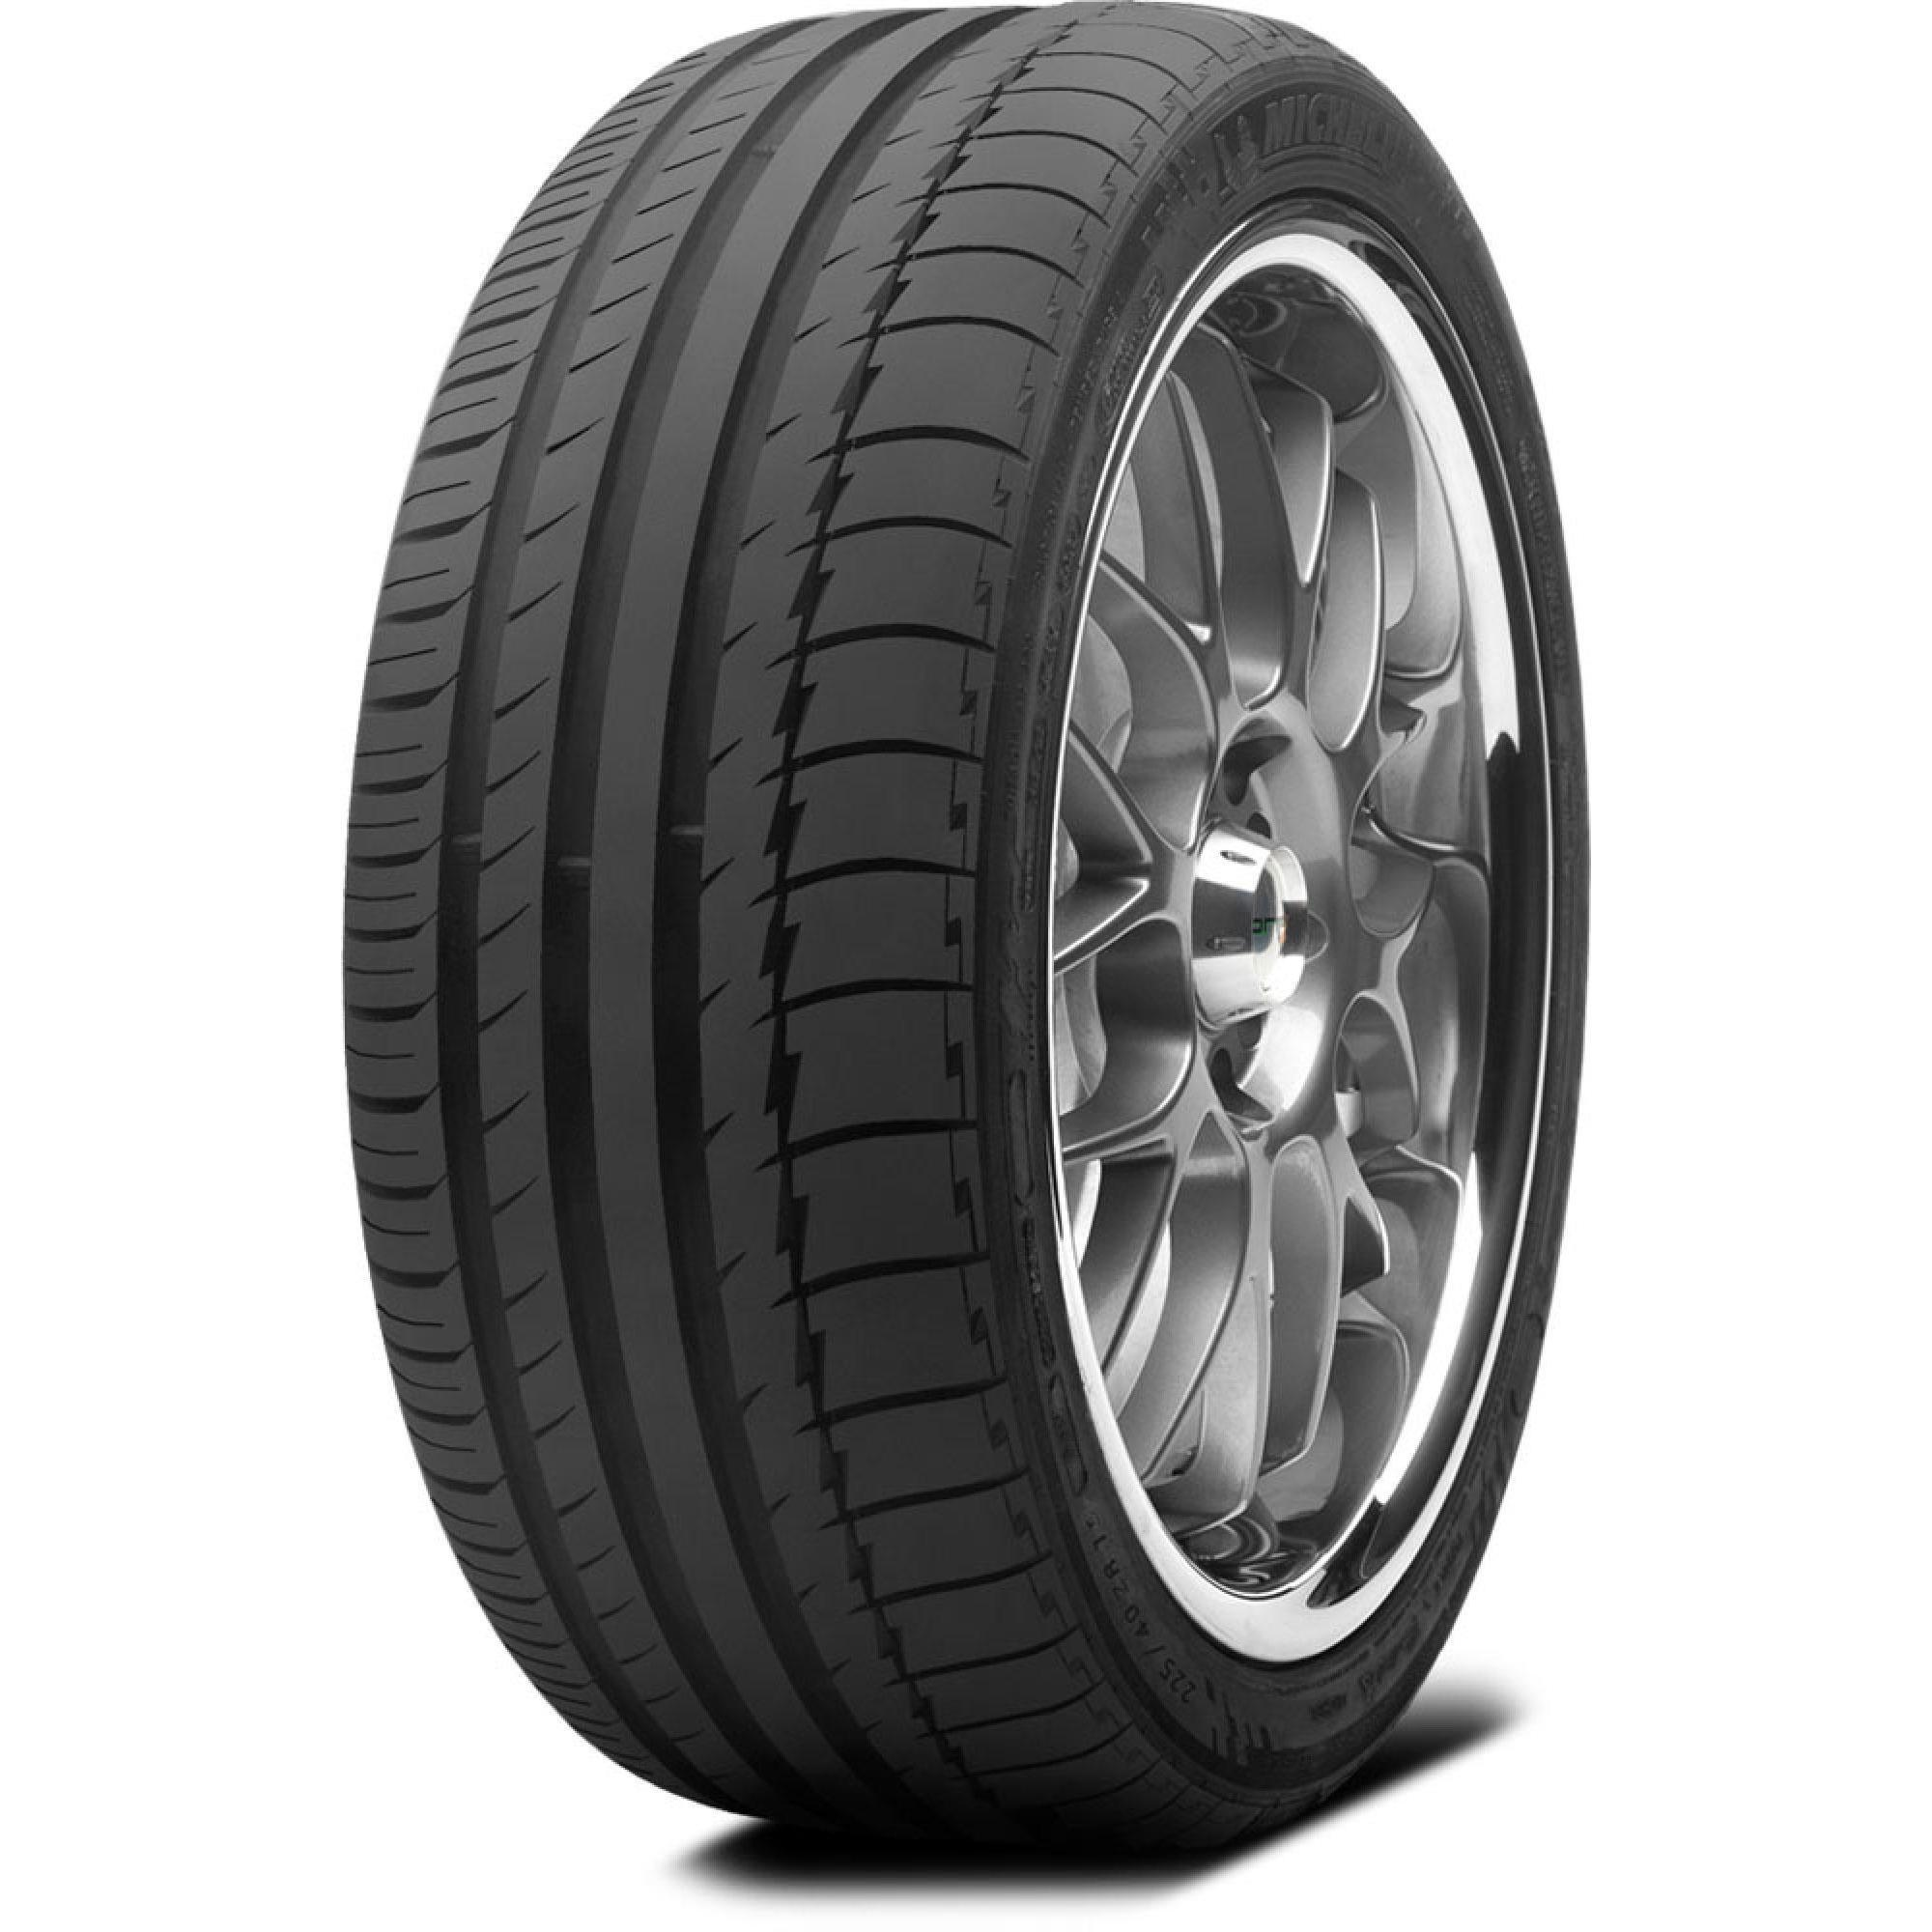 Llantas MICHELIN PILOT SPORT PS2 275/40 R17